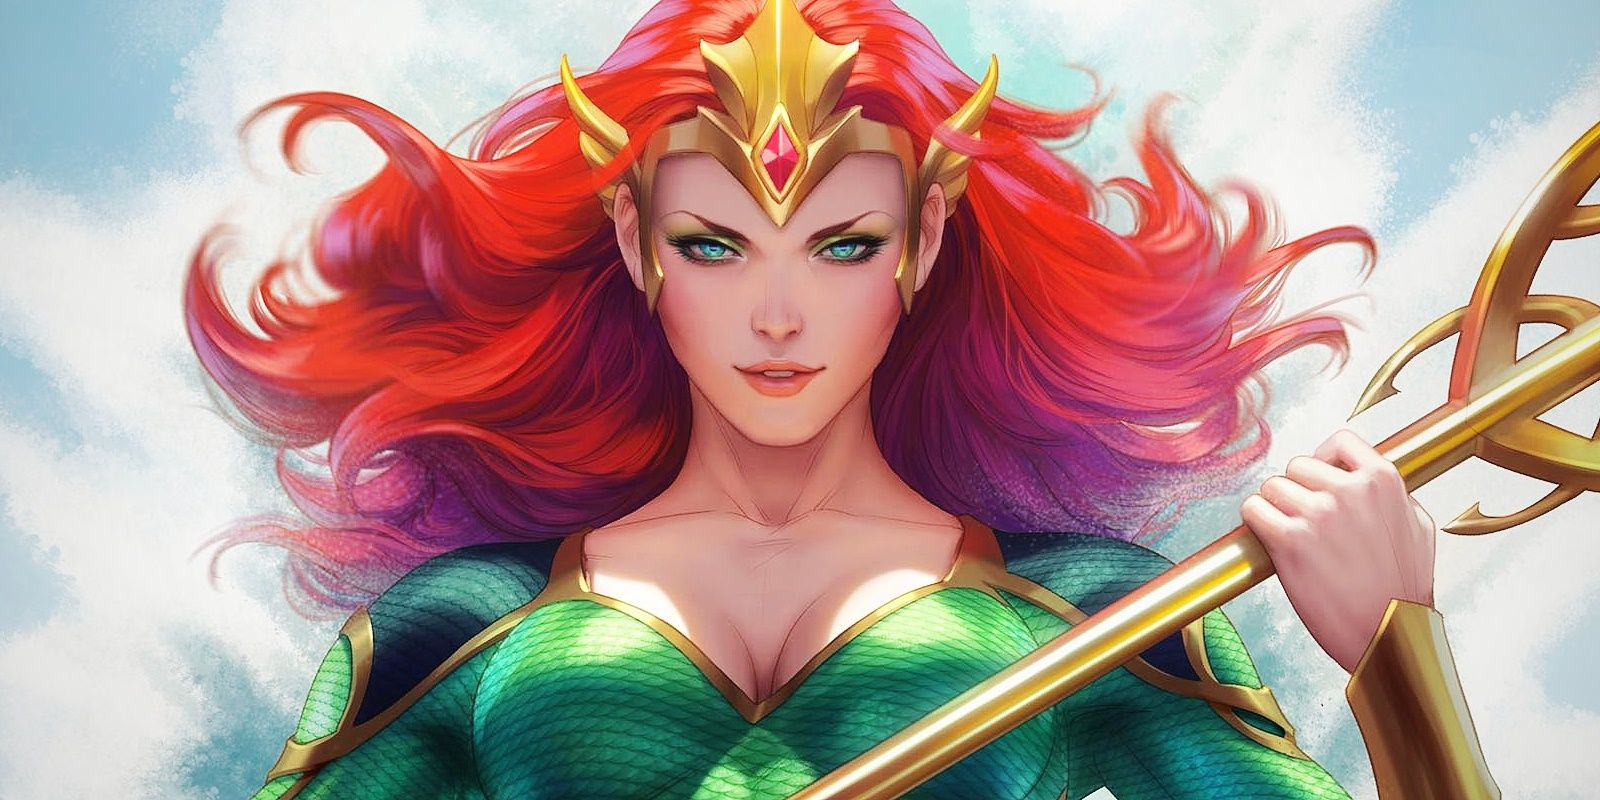 Mera: The 10 Coolest Facts From DC Comics Canon